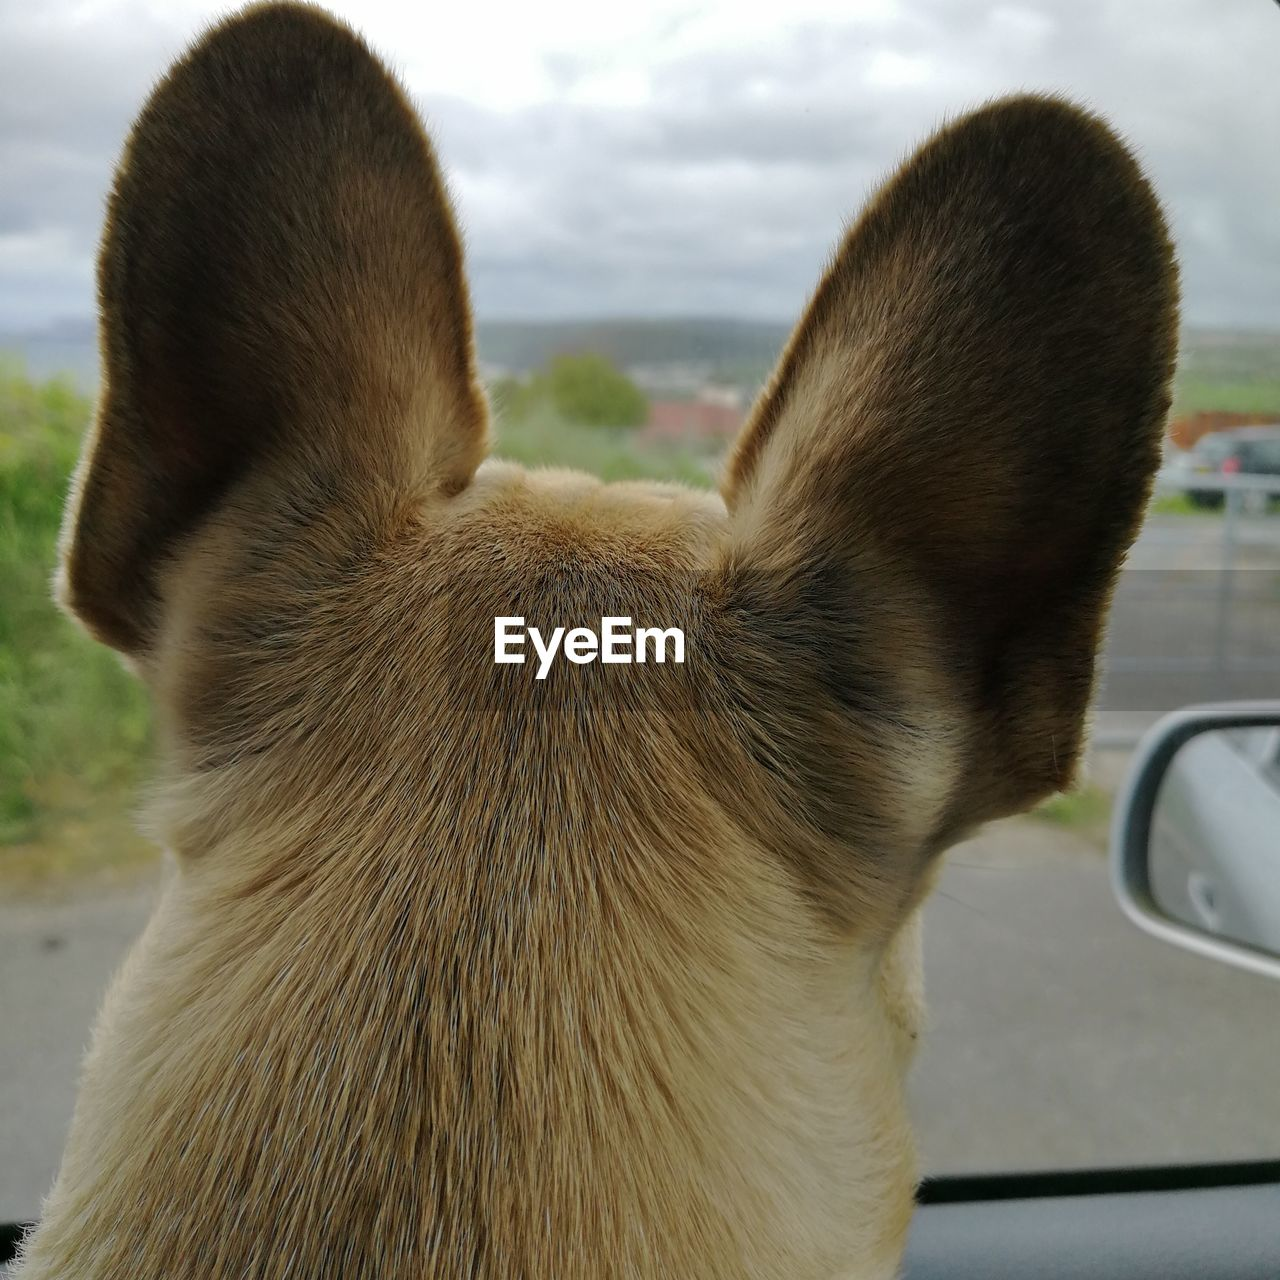 one animal, mammal, animal, animal themes, pets, domestic, domestic animals, vertebrate, dog, canine, close-up, no people, focus on foreground, animal body part, day, rear view, transportation, car, motor vehicle, animal head, animal ear